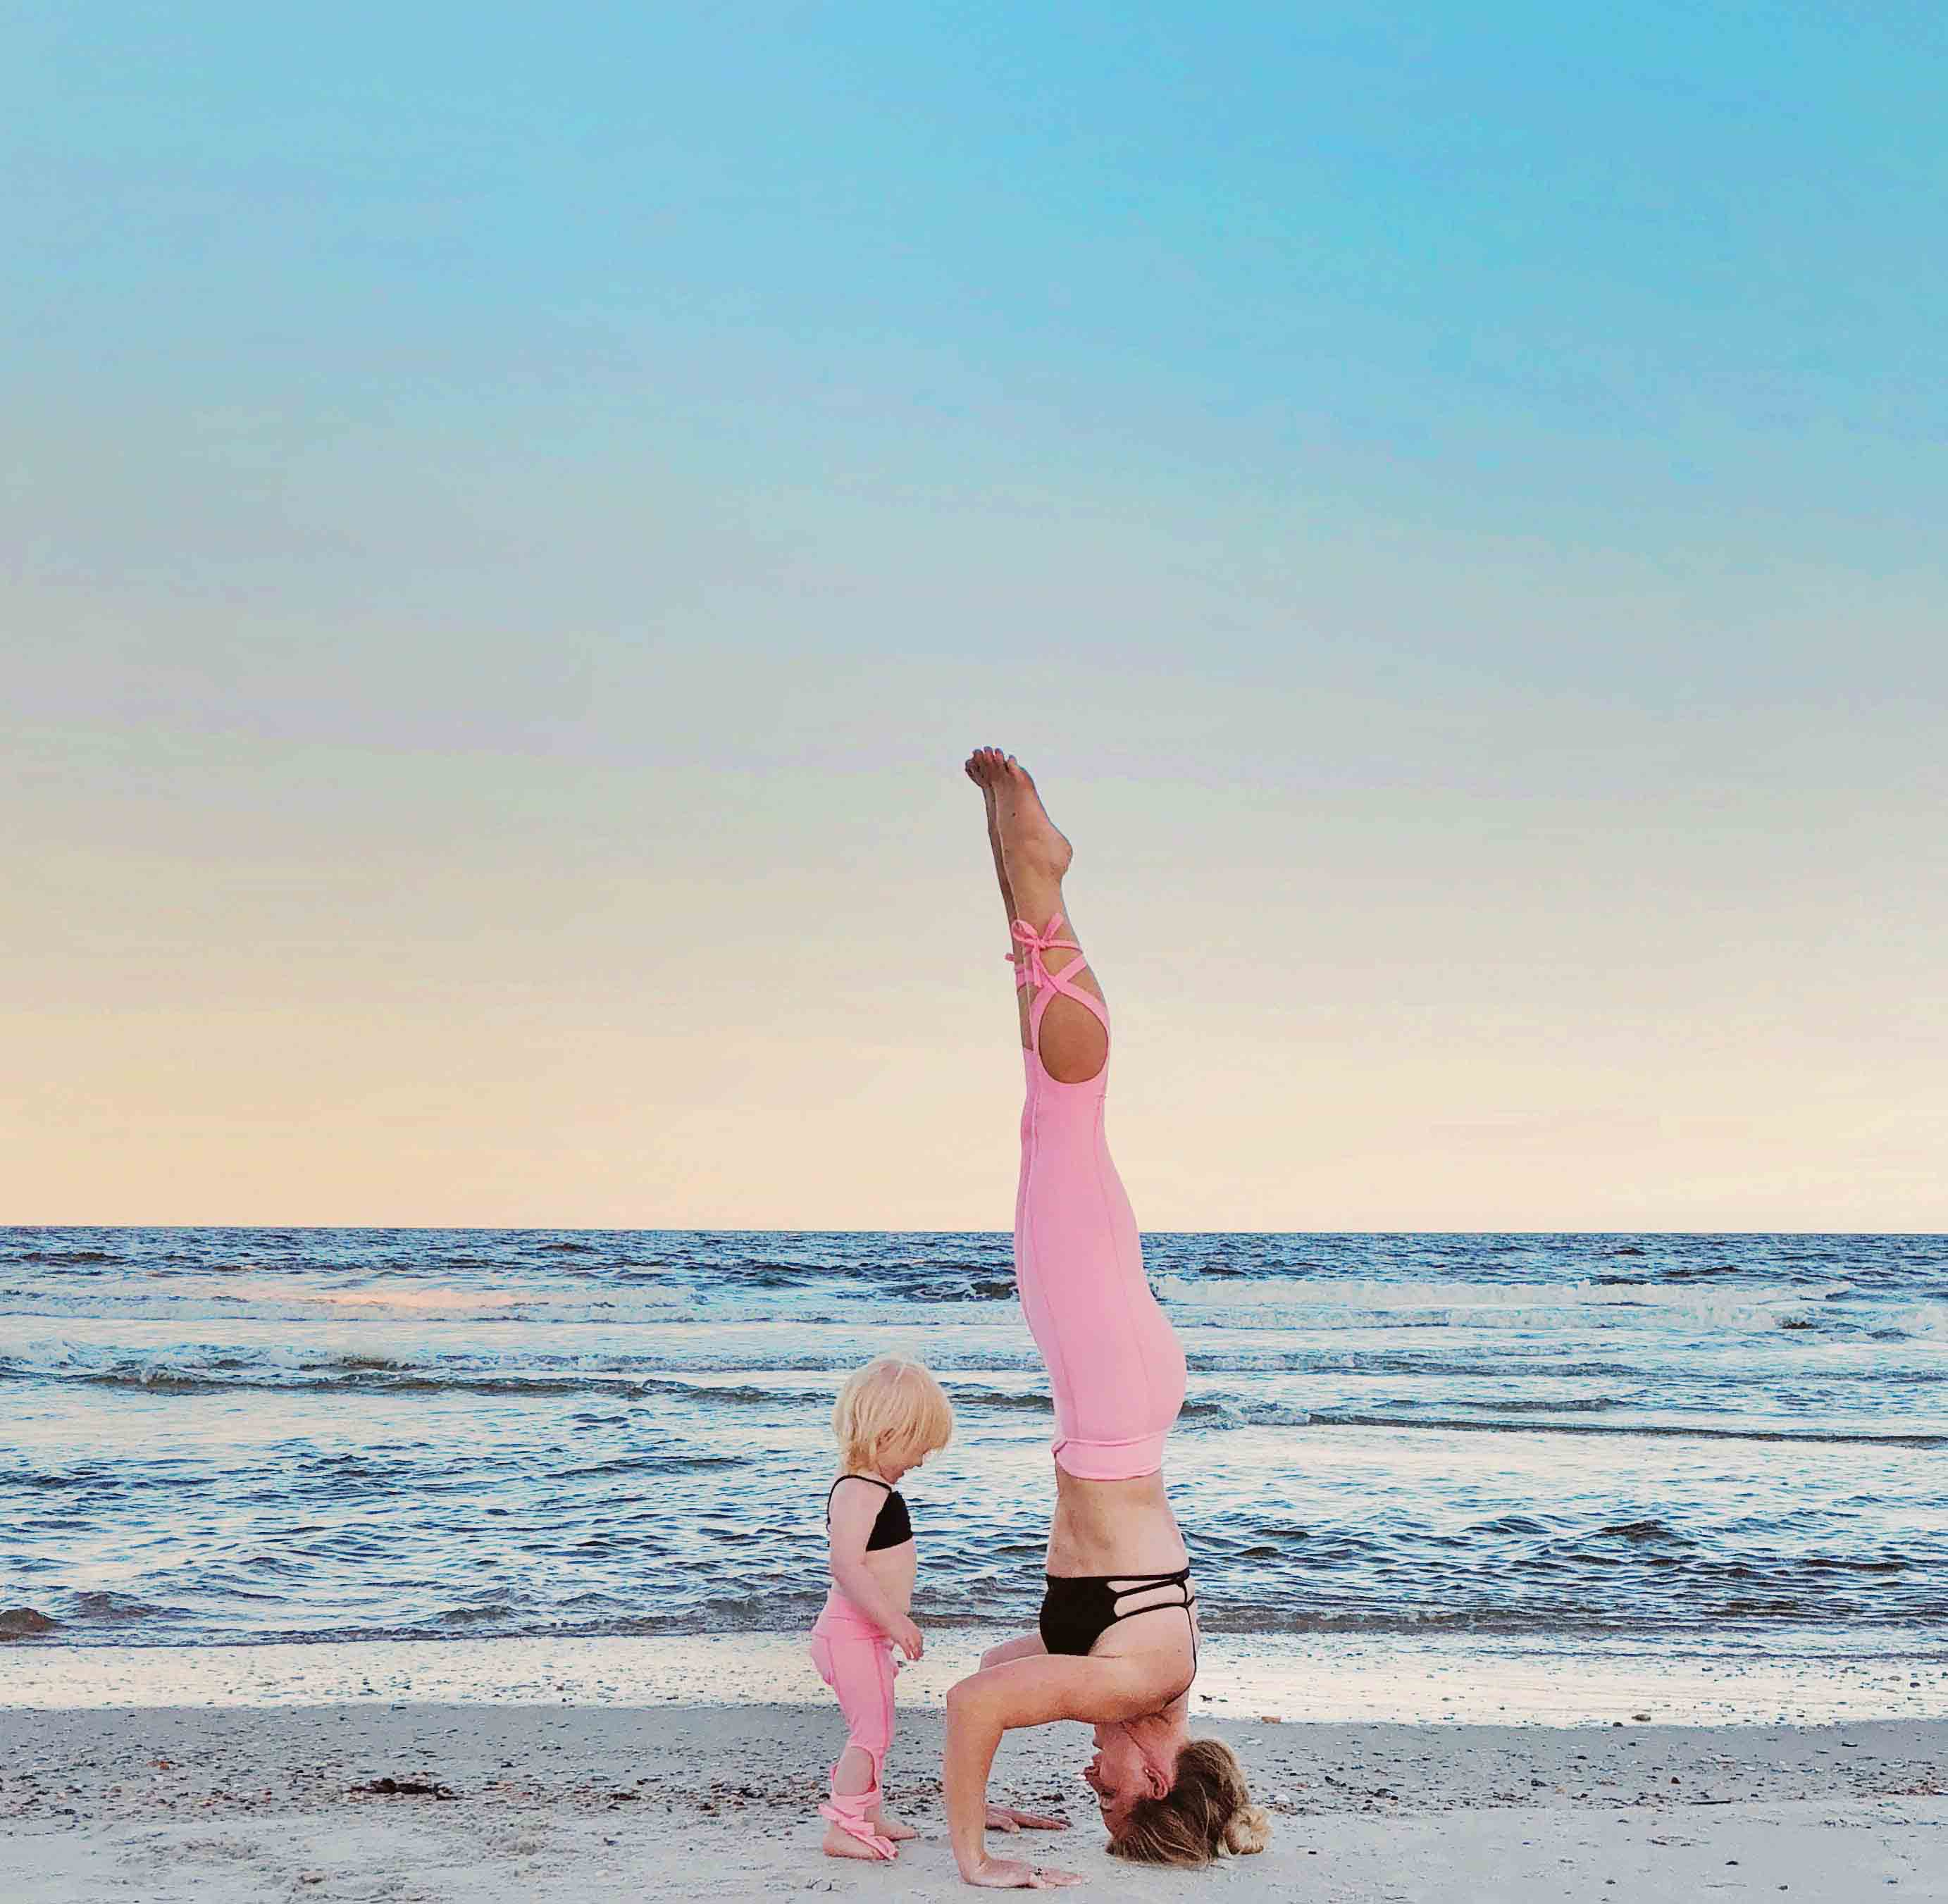 Amelia Island Wellness Fest and Other Holiday Fun by Atlanta fitness blogger Happily Hughes